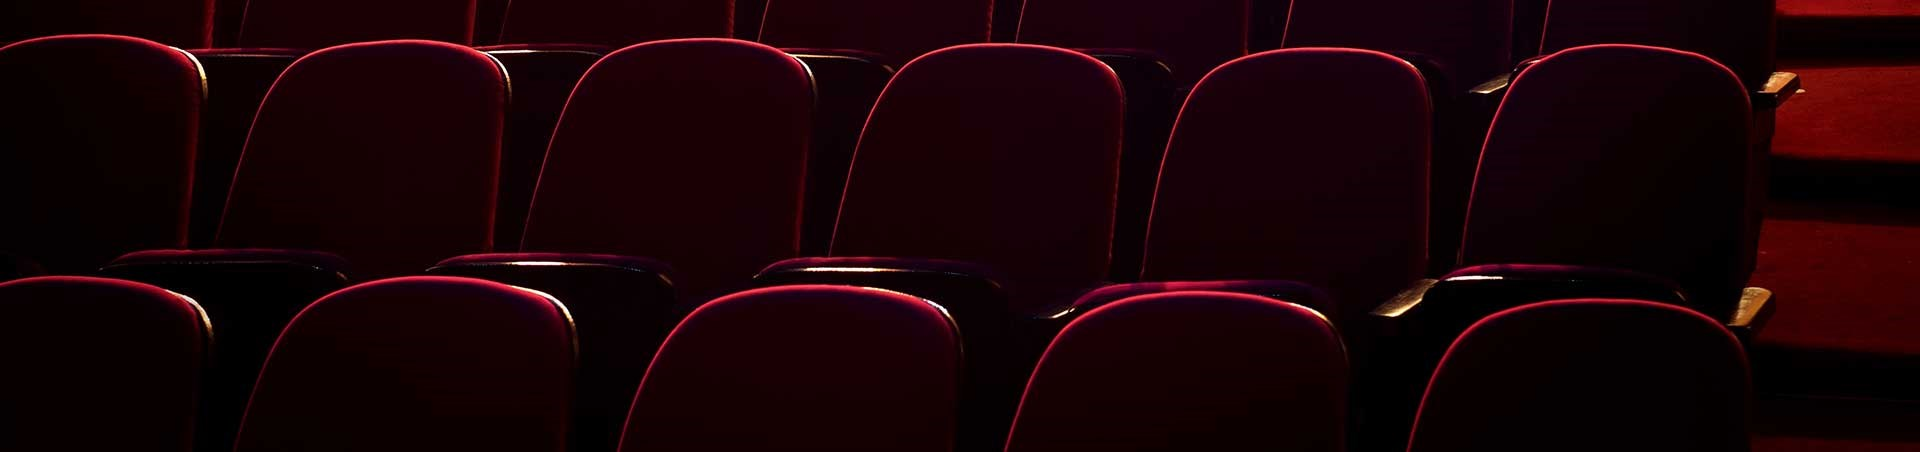 Red seats for an event